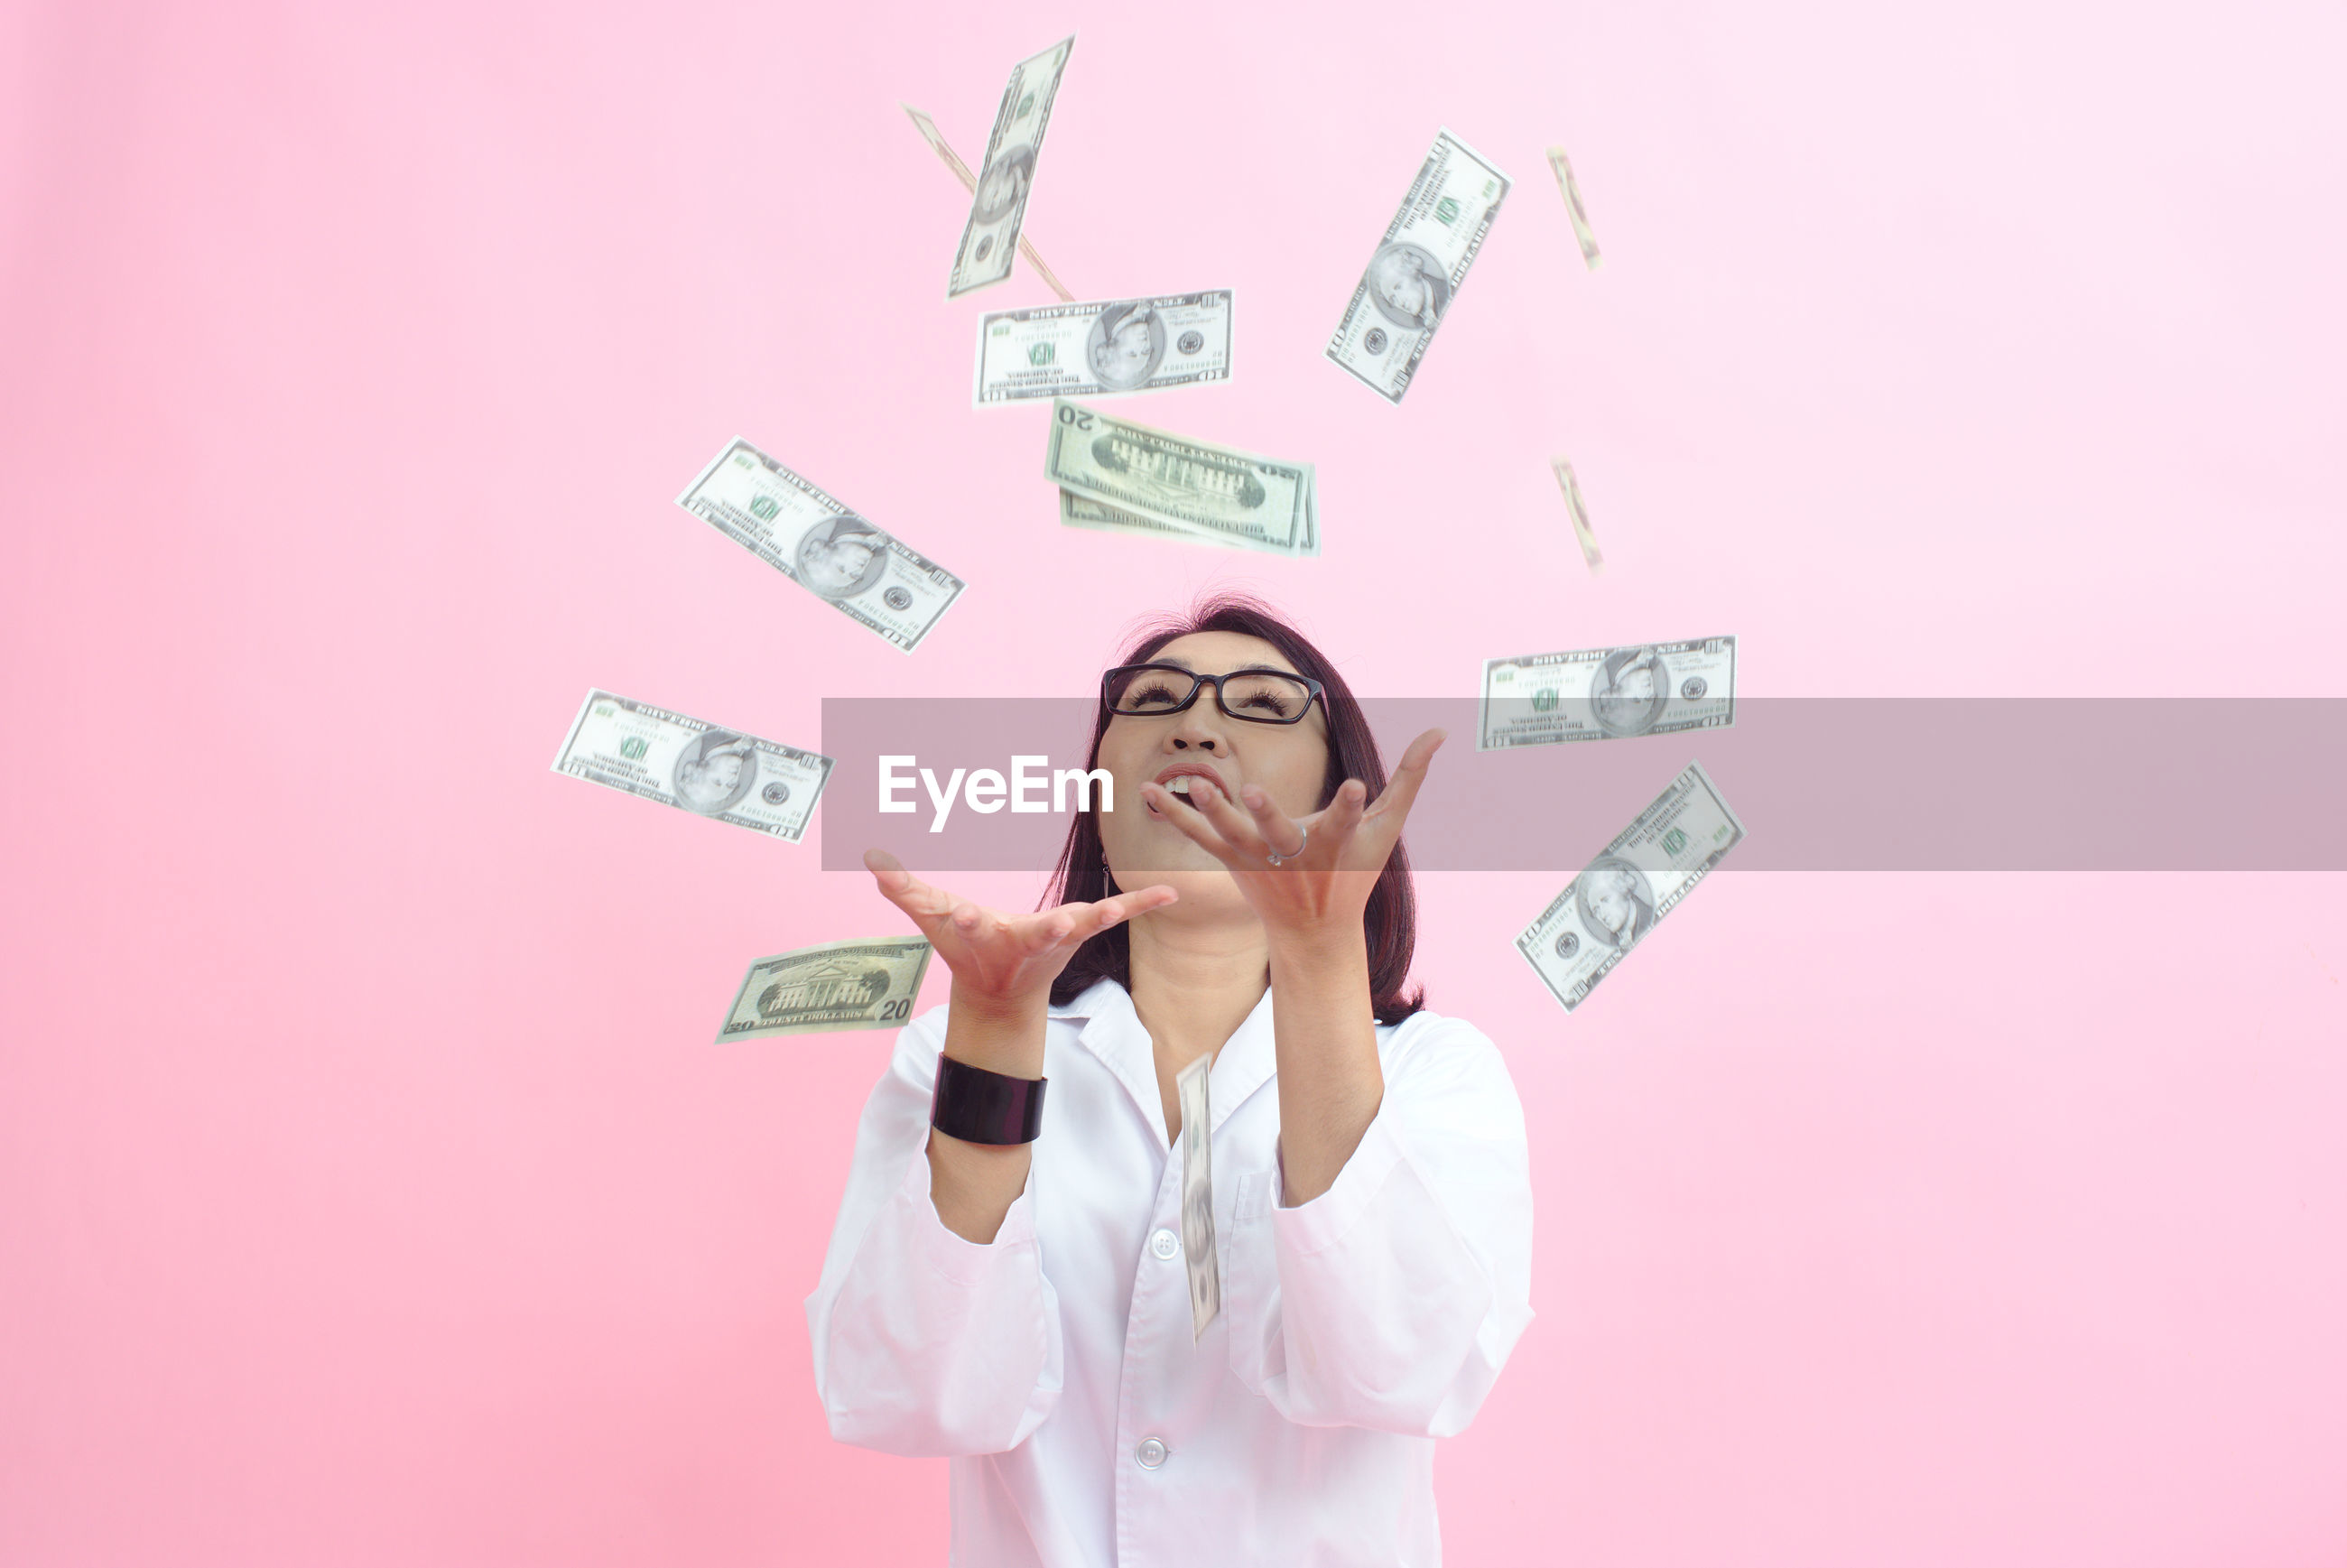 Woman trying to hold flying money against pink background